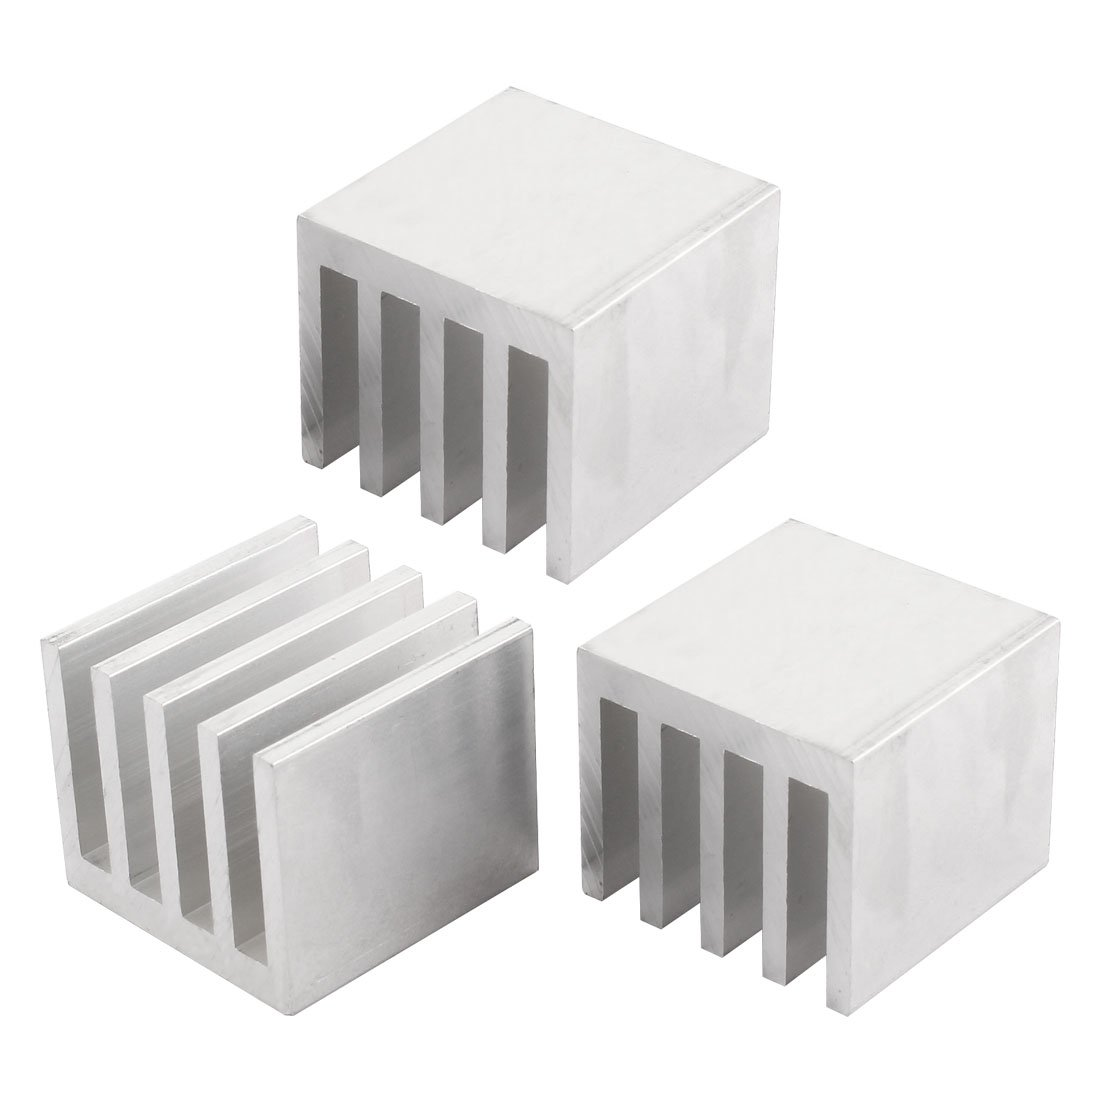 3PCS 35x35x30mm Aluminum Heatsink Cooling for LED Power Memory Chip by uxcell (Image #1)